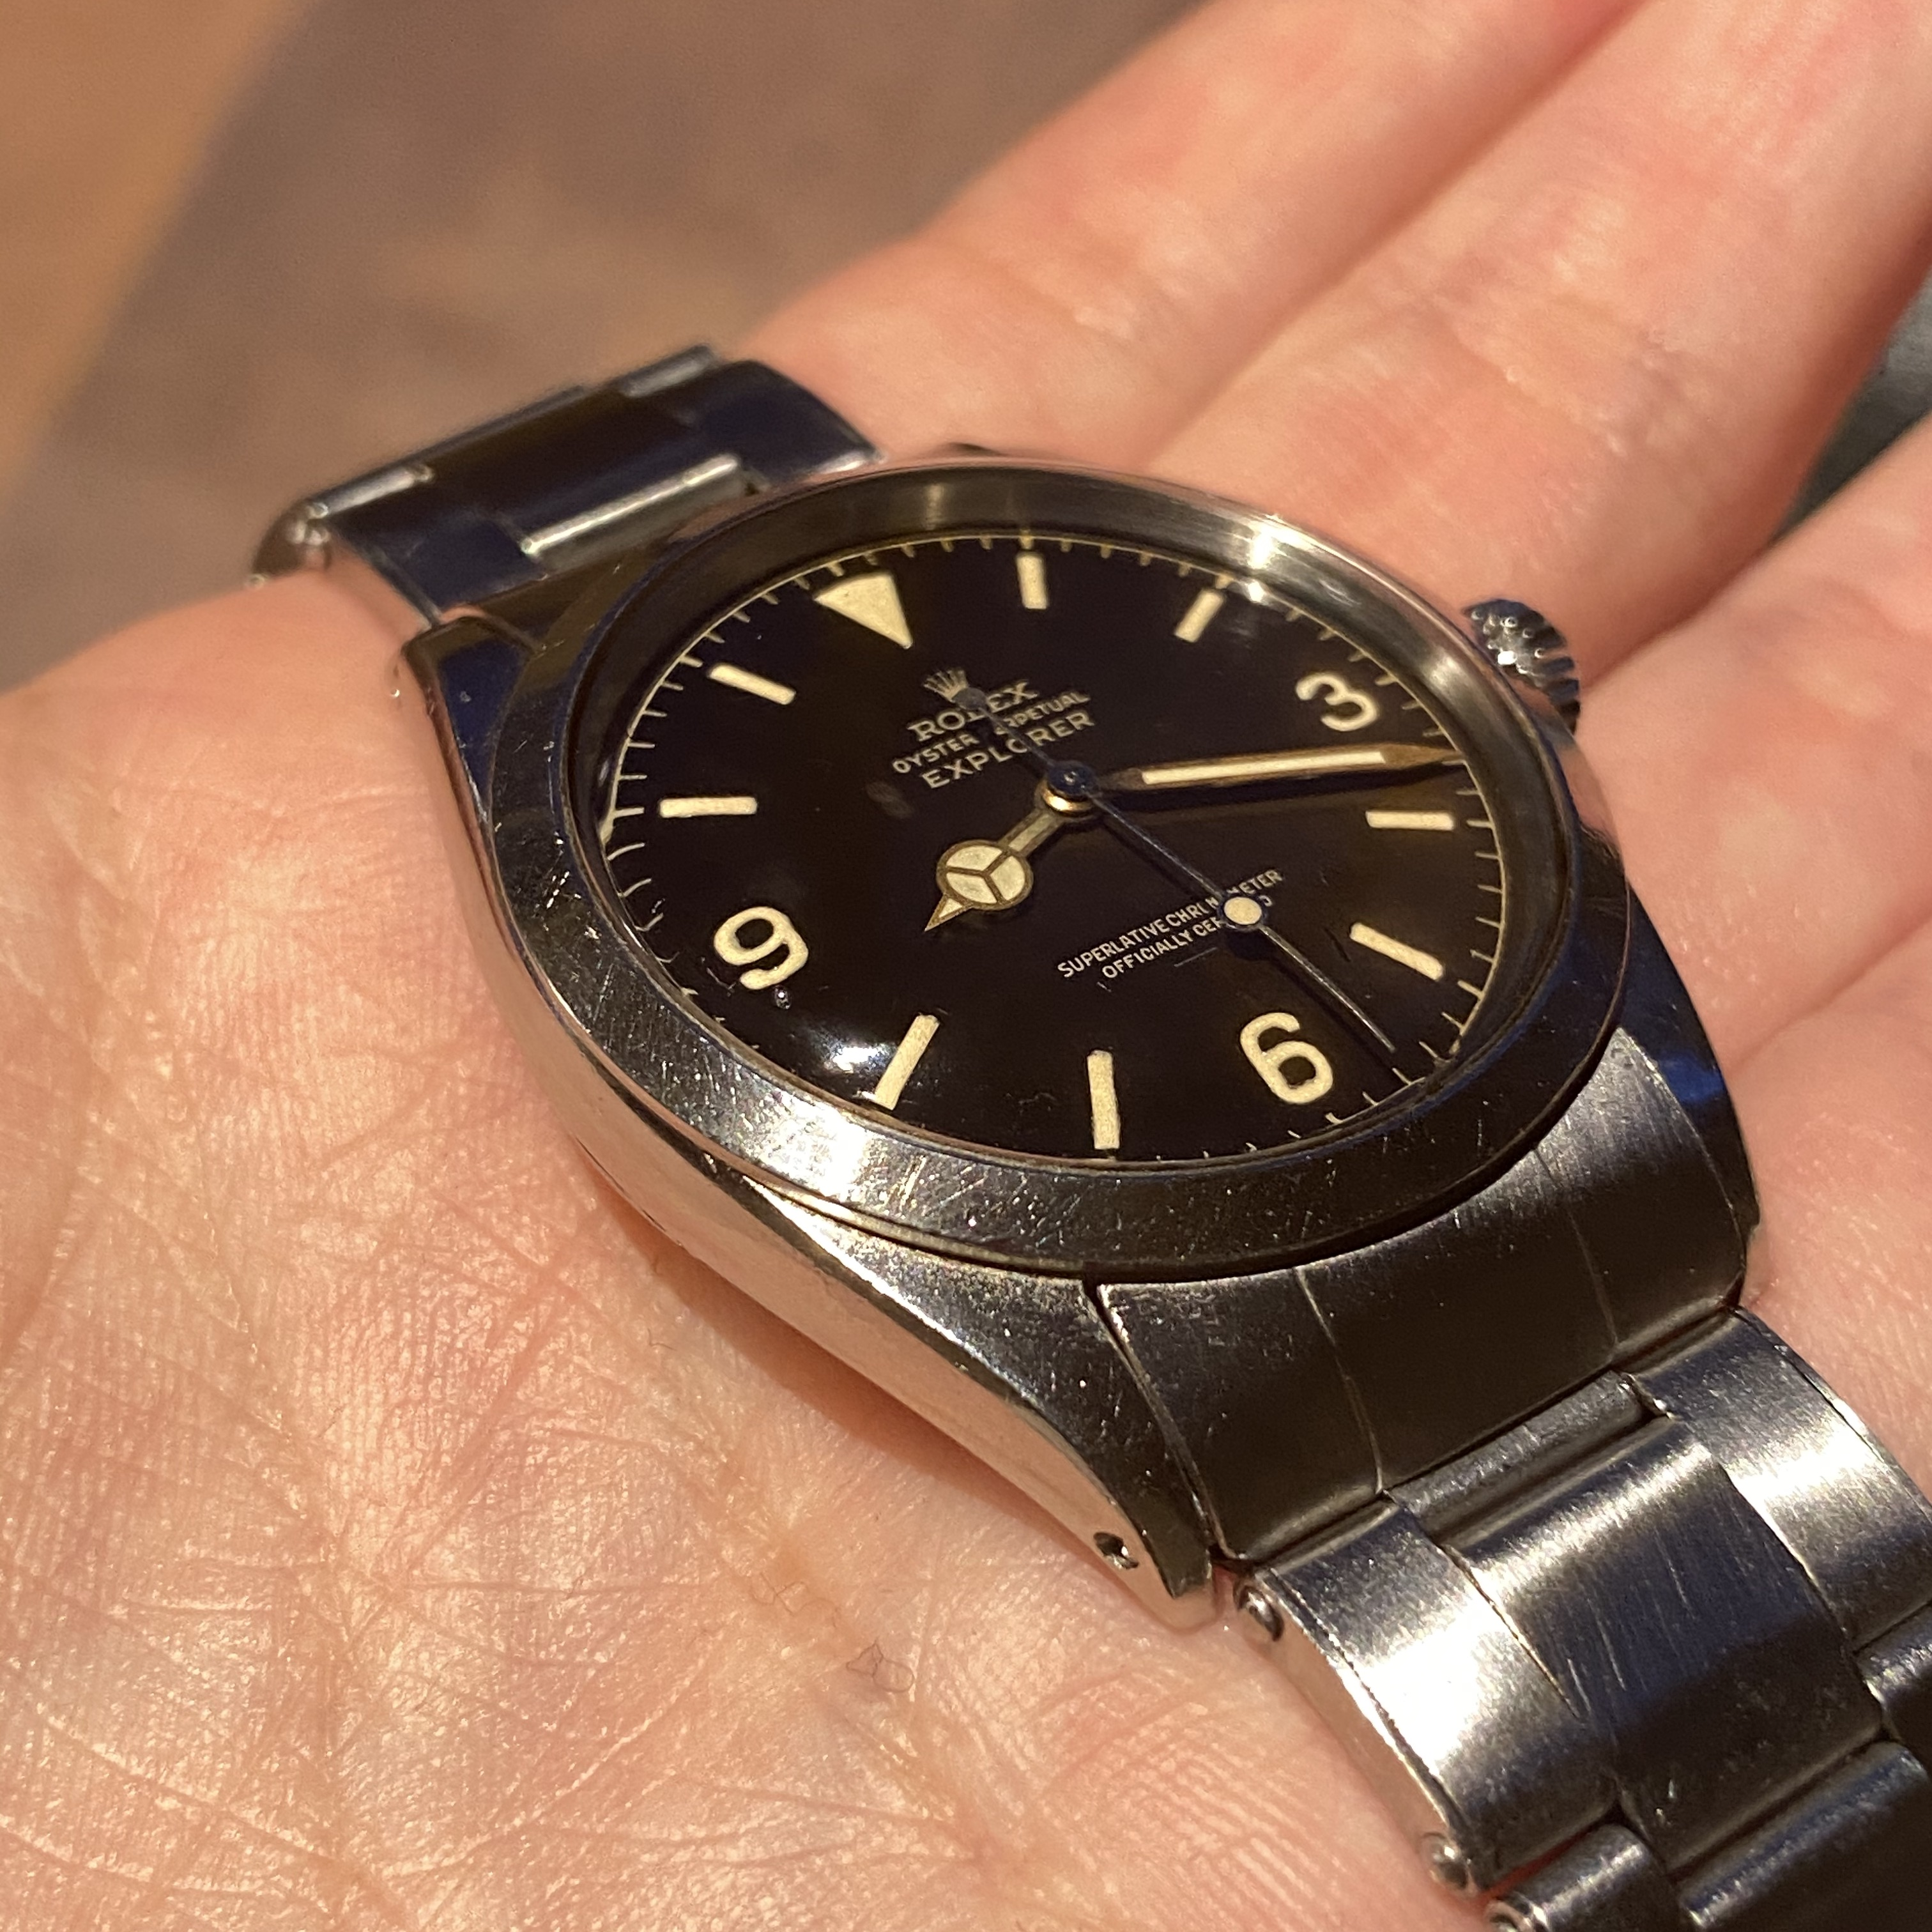 Rolex 1016 underline with chapter ring in tropical 1963 #status : sold